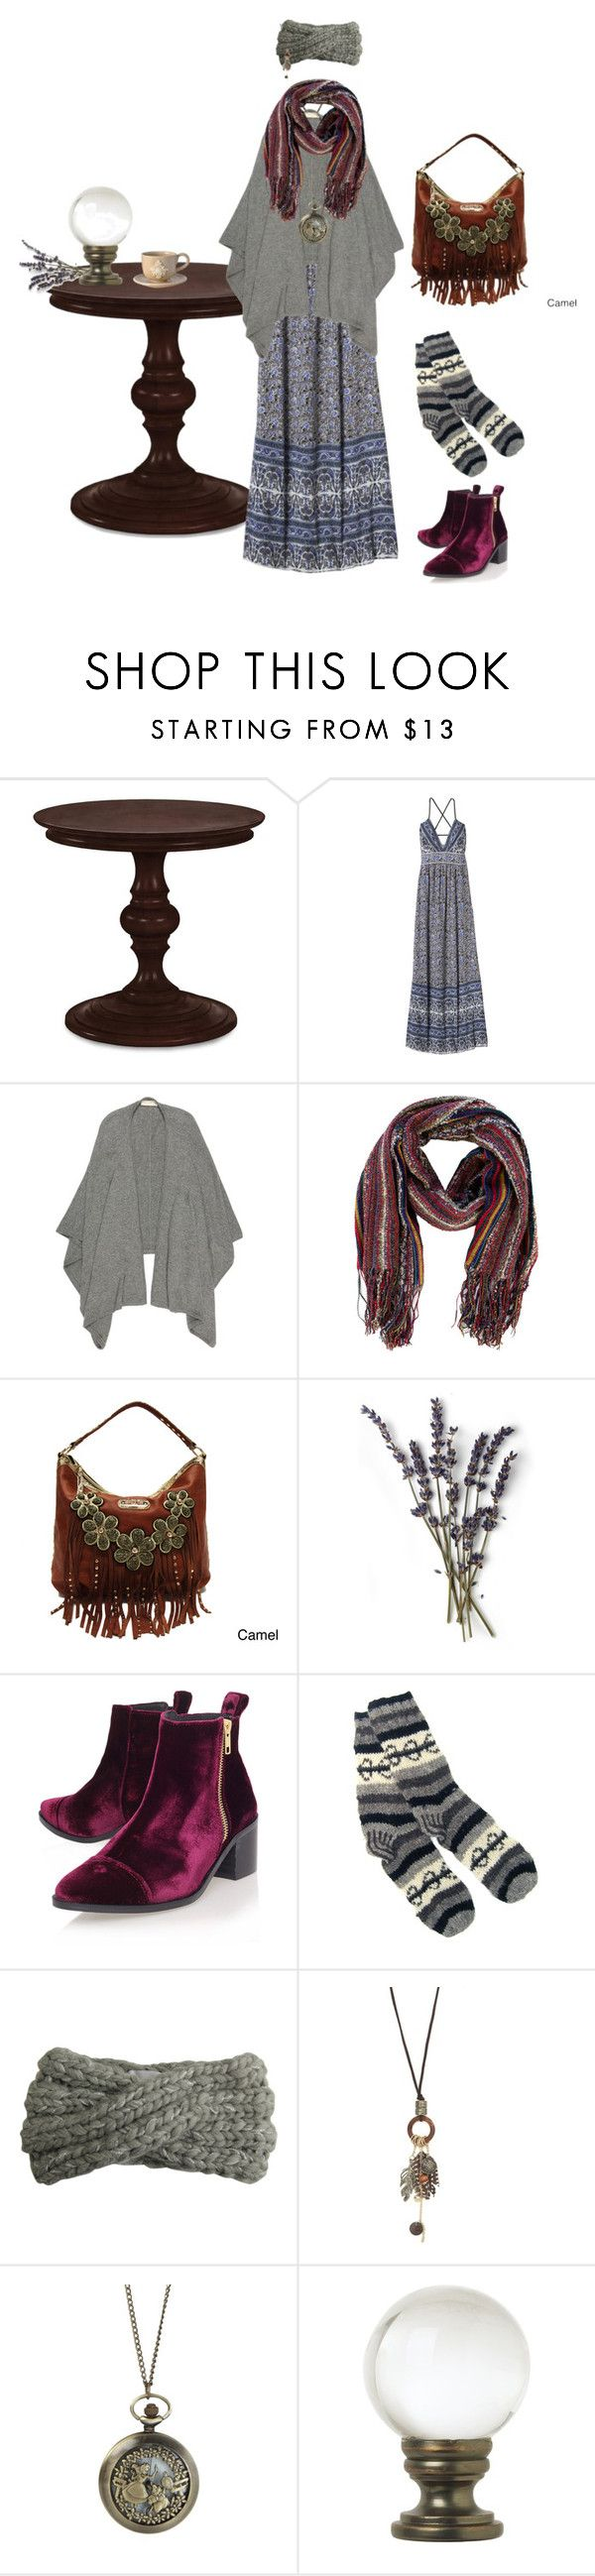 """""""Pofessor Trelawney"""" by shortcuttothestars ❤ liked on Polyvore featuring Ethan Allen, Rebecca Taylor, Nicole Miller, Missoni, Nicole Lee, Topshop, FAIR+true, Eugenia Kim, With Love From CA and Disney"""